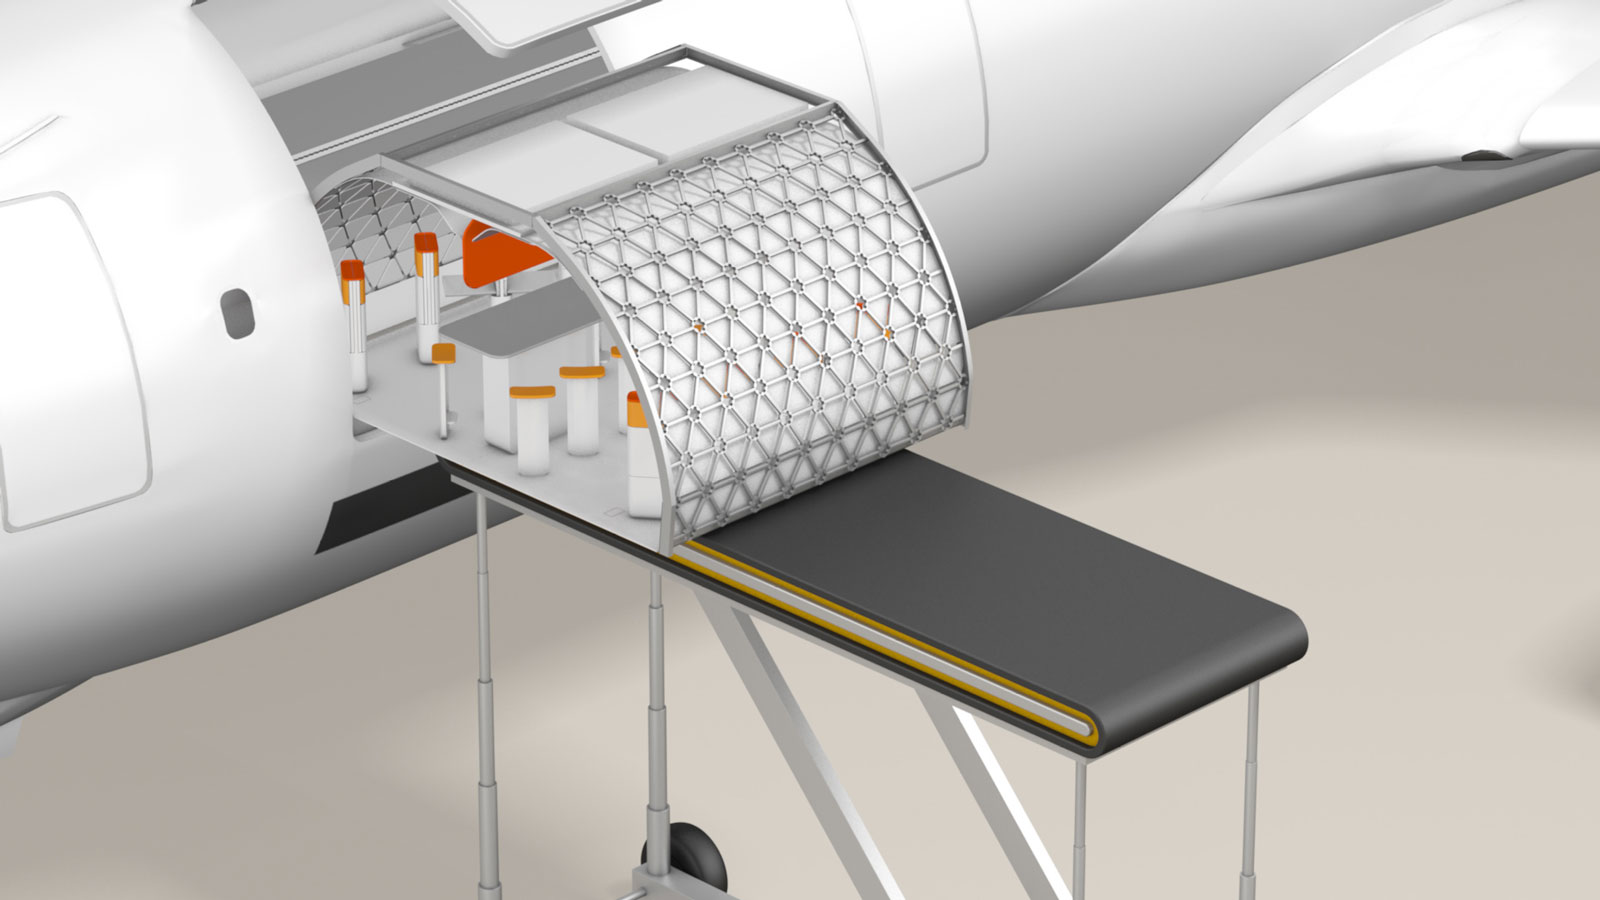 Modular aircraft cabins will change how we fly.